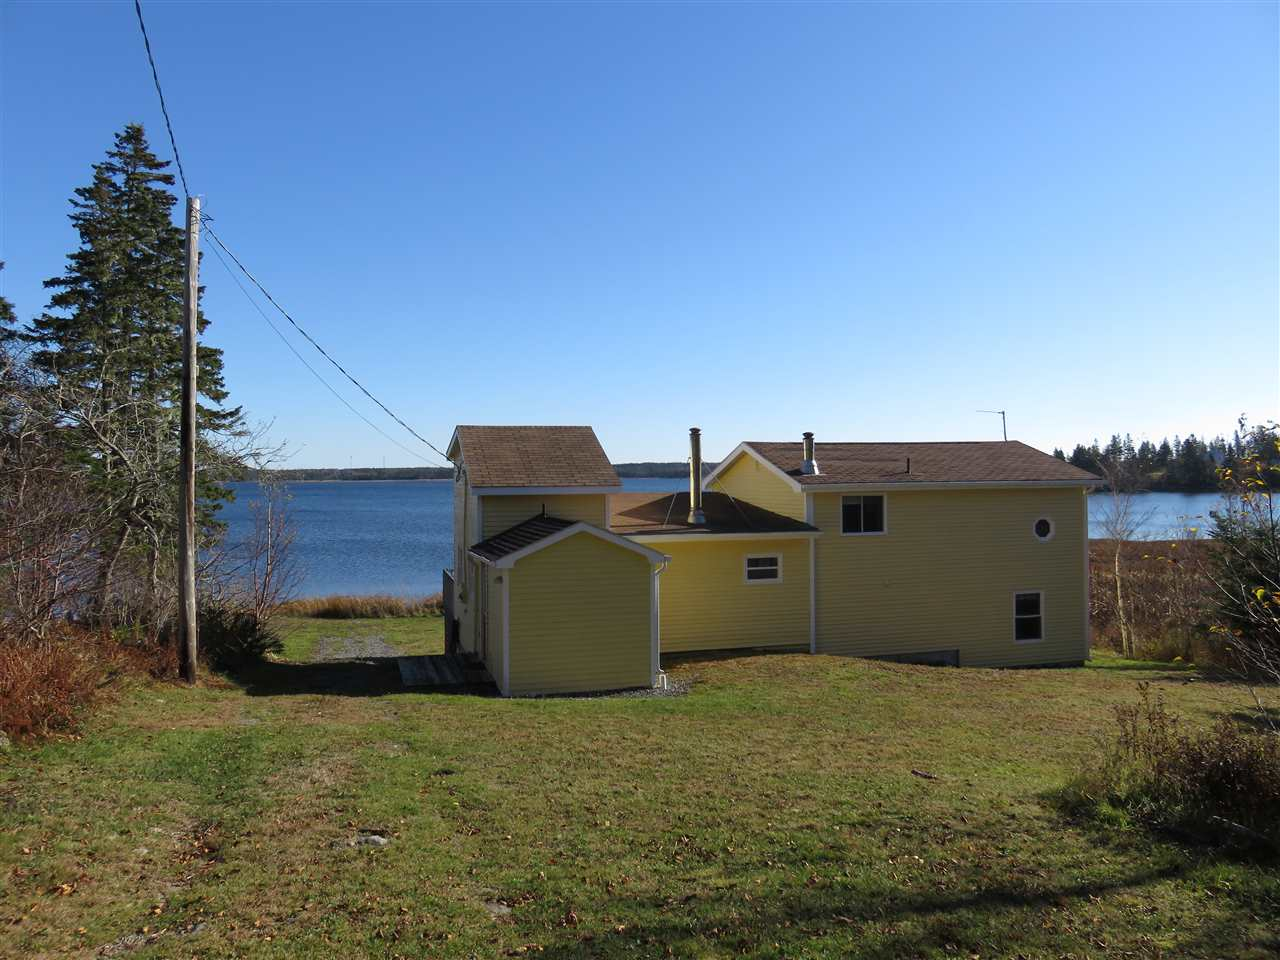 Photo 4: Photos: 783 WEST GREEN HARBOUR Road in West Green Harbour: 407-Shelburne County Residential for sale (South Shore)  : MLS®# 201701314